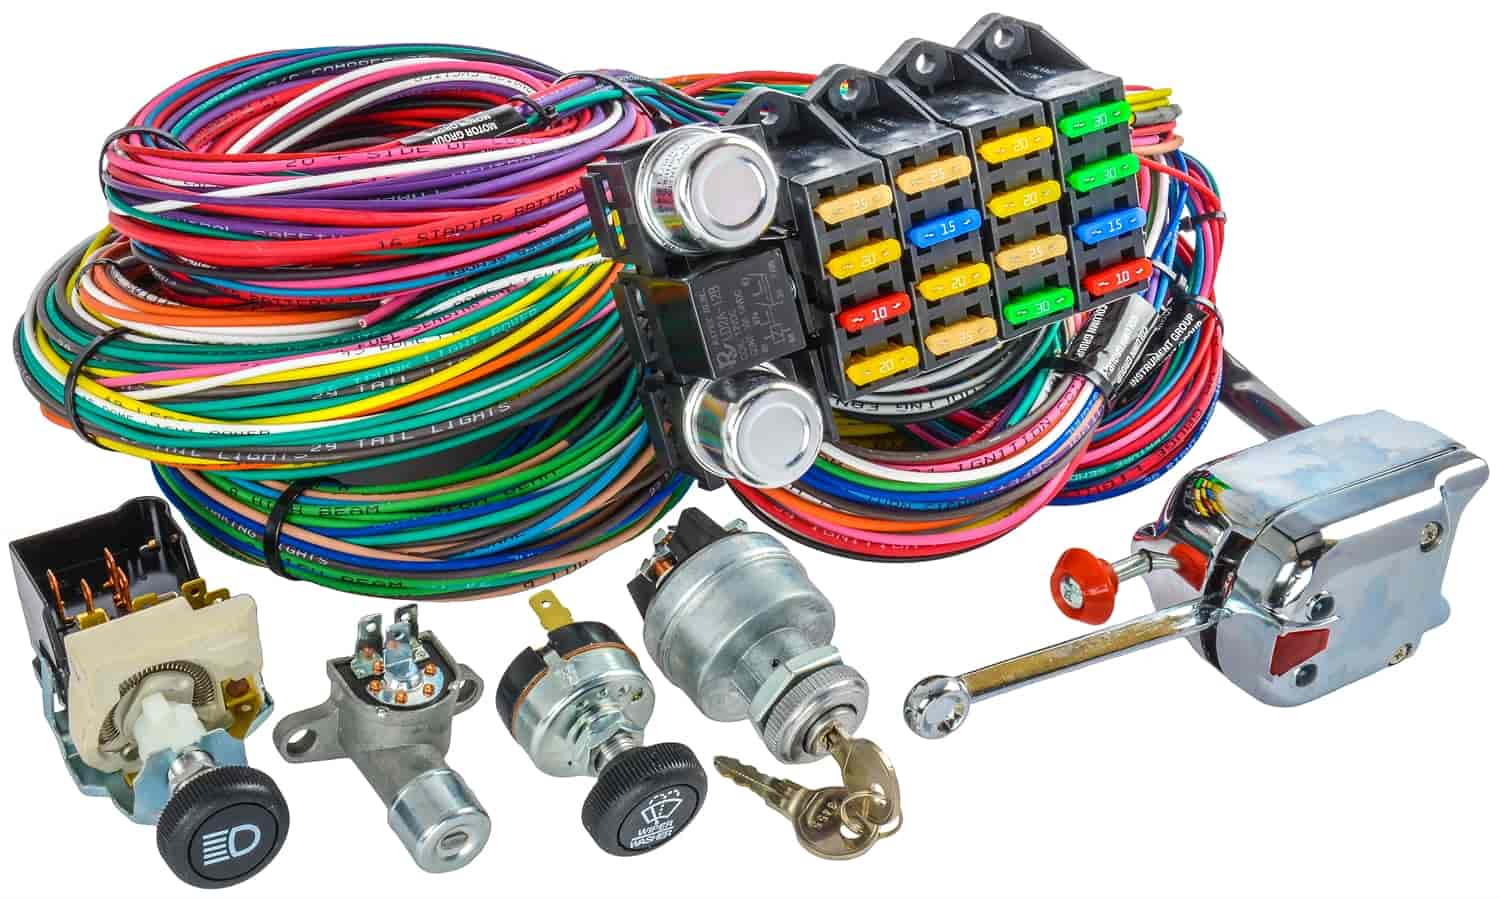 555 10405k jegs performance products 10405k universal wiring harness jegs universal wiring harness at fashall.co